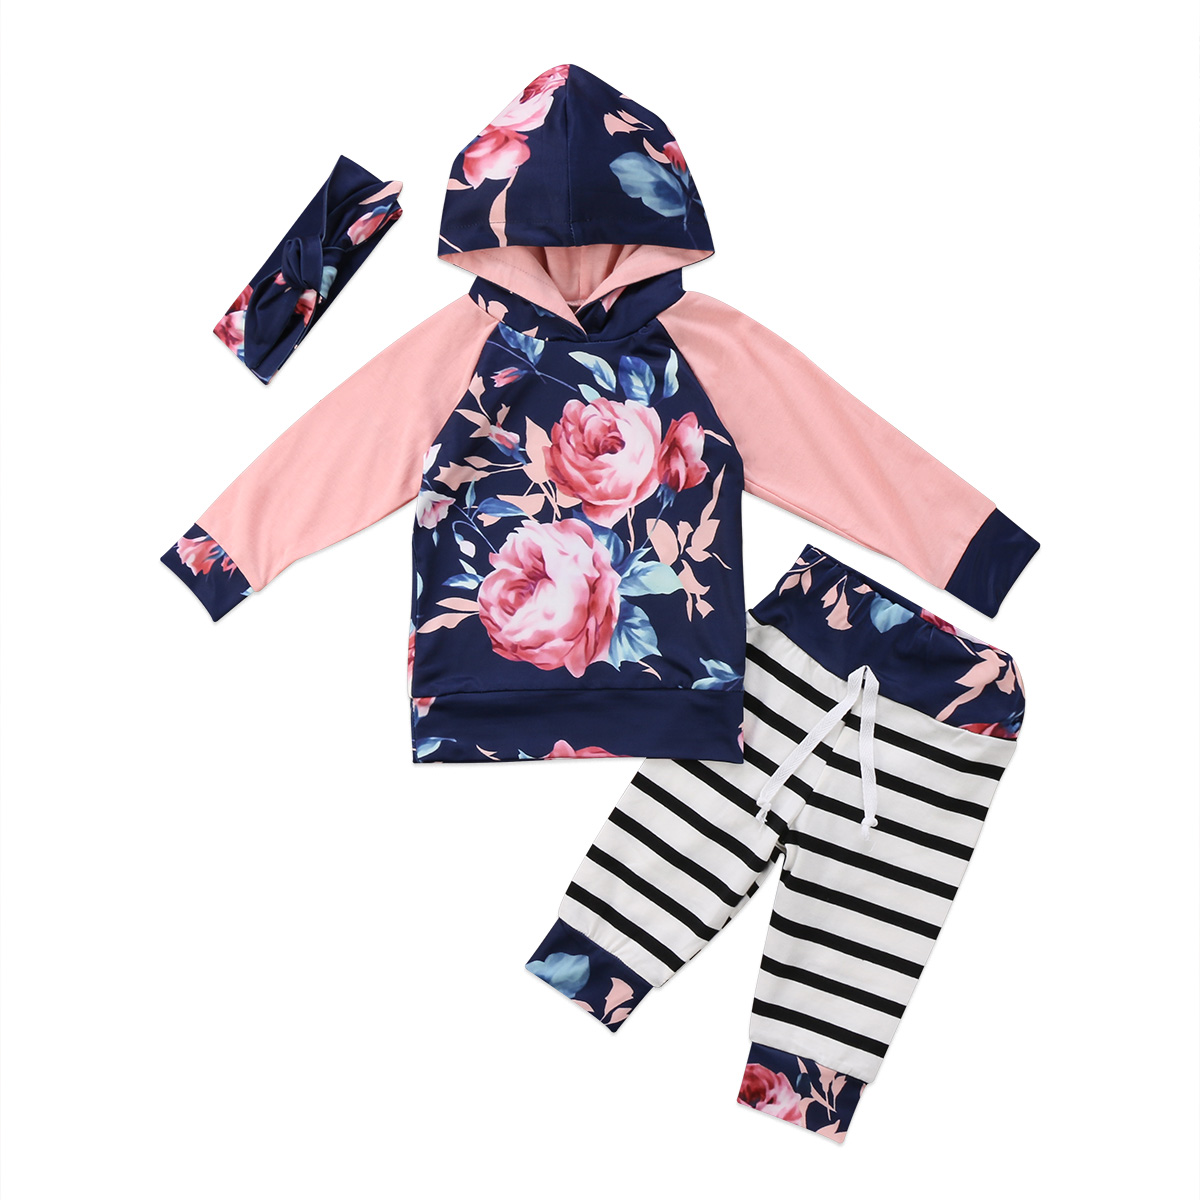 3PCS Toddler Baby Girl Winter Clothes Hooded T-shirt Tops+Pants Kids Outfits Set